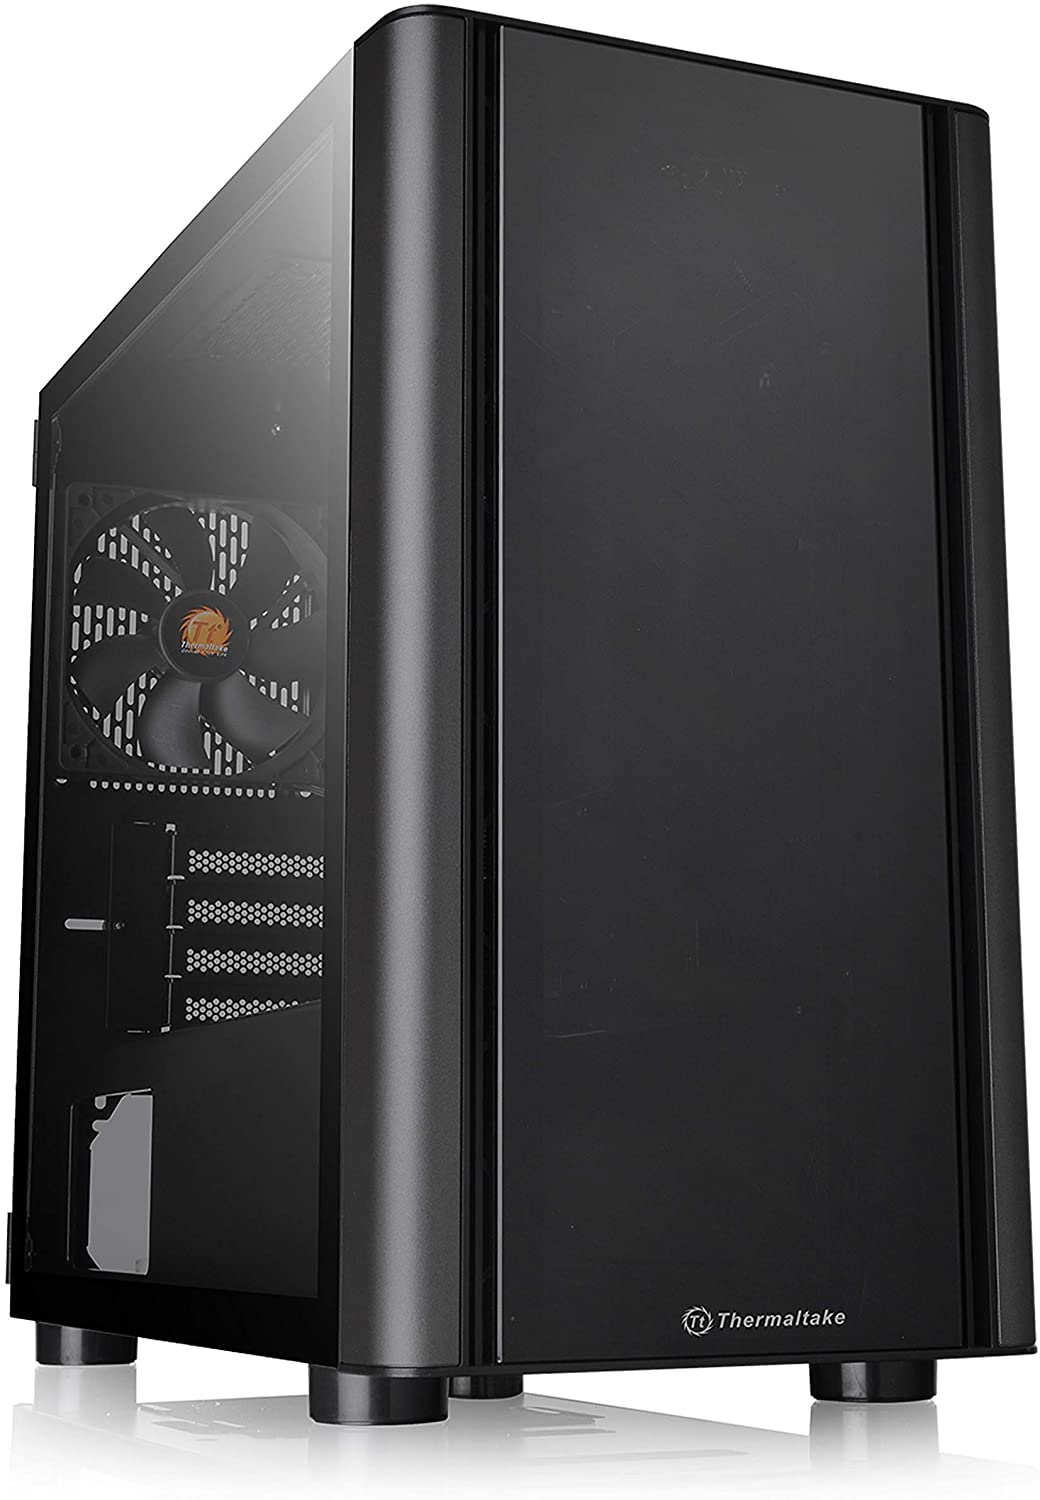 THERMALTAKE V150 TG MICRO TOWER CHASSIS (BLACK) - CA-1R1-00S1WN-00